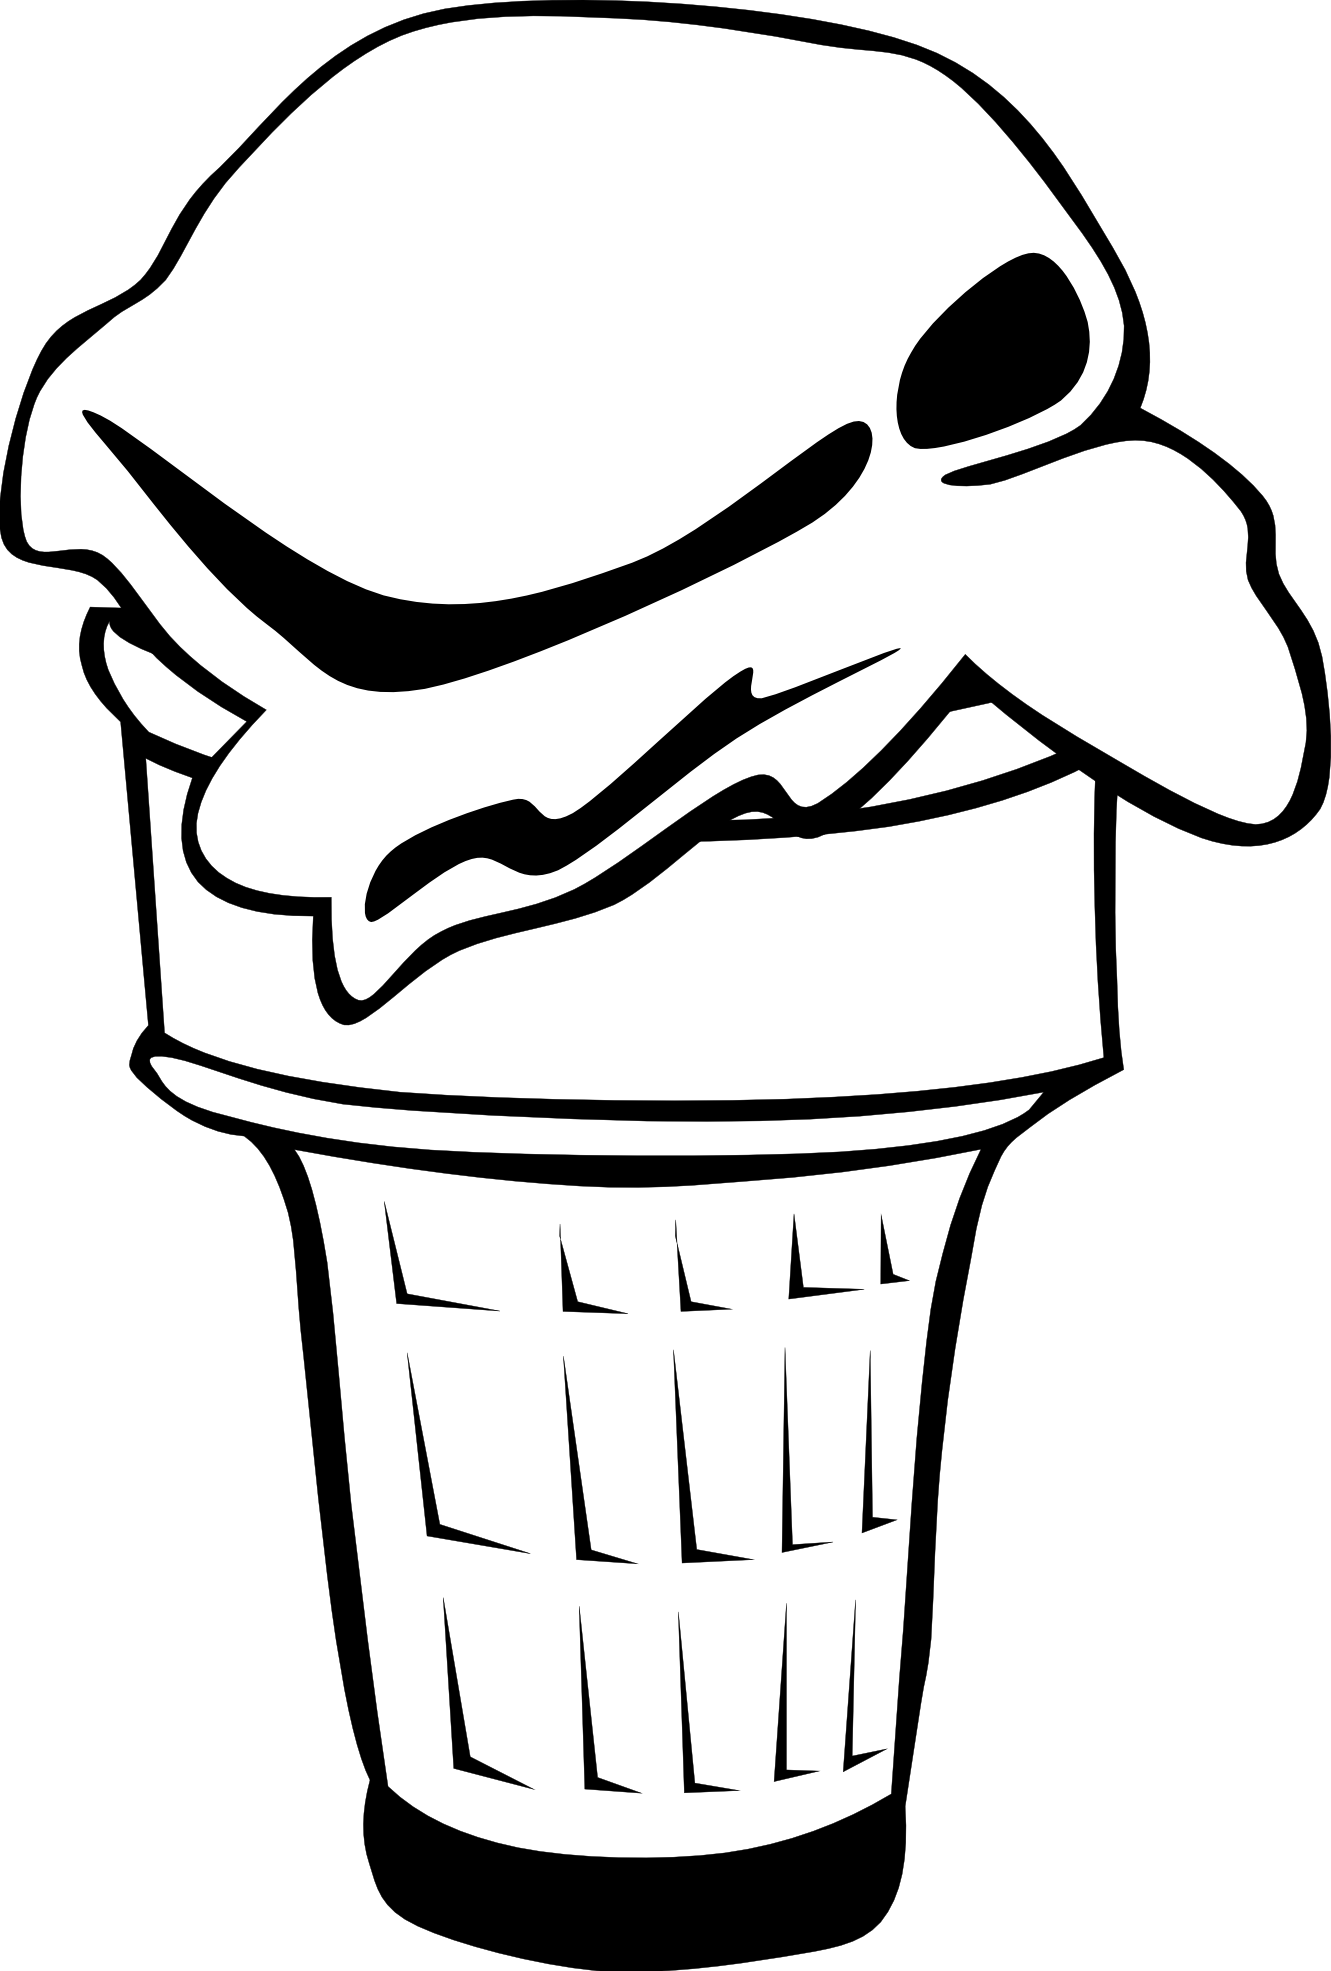 jpg freeuse library Ice cream cone clipart black and white. Panda free blackandwhiteicecreamconeclipart